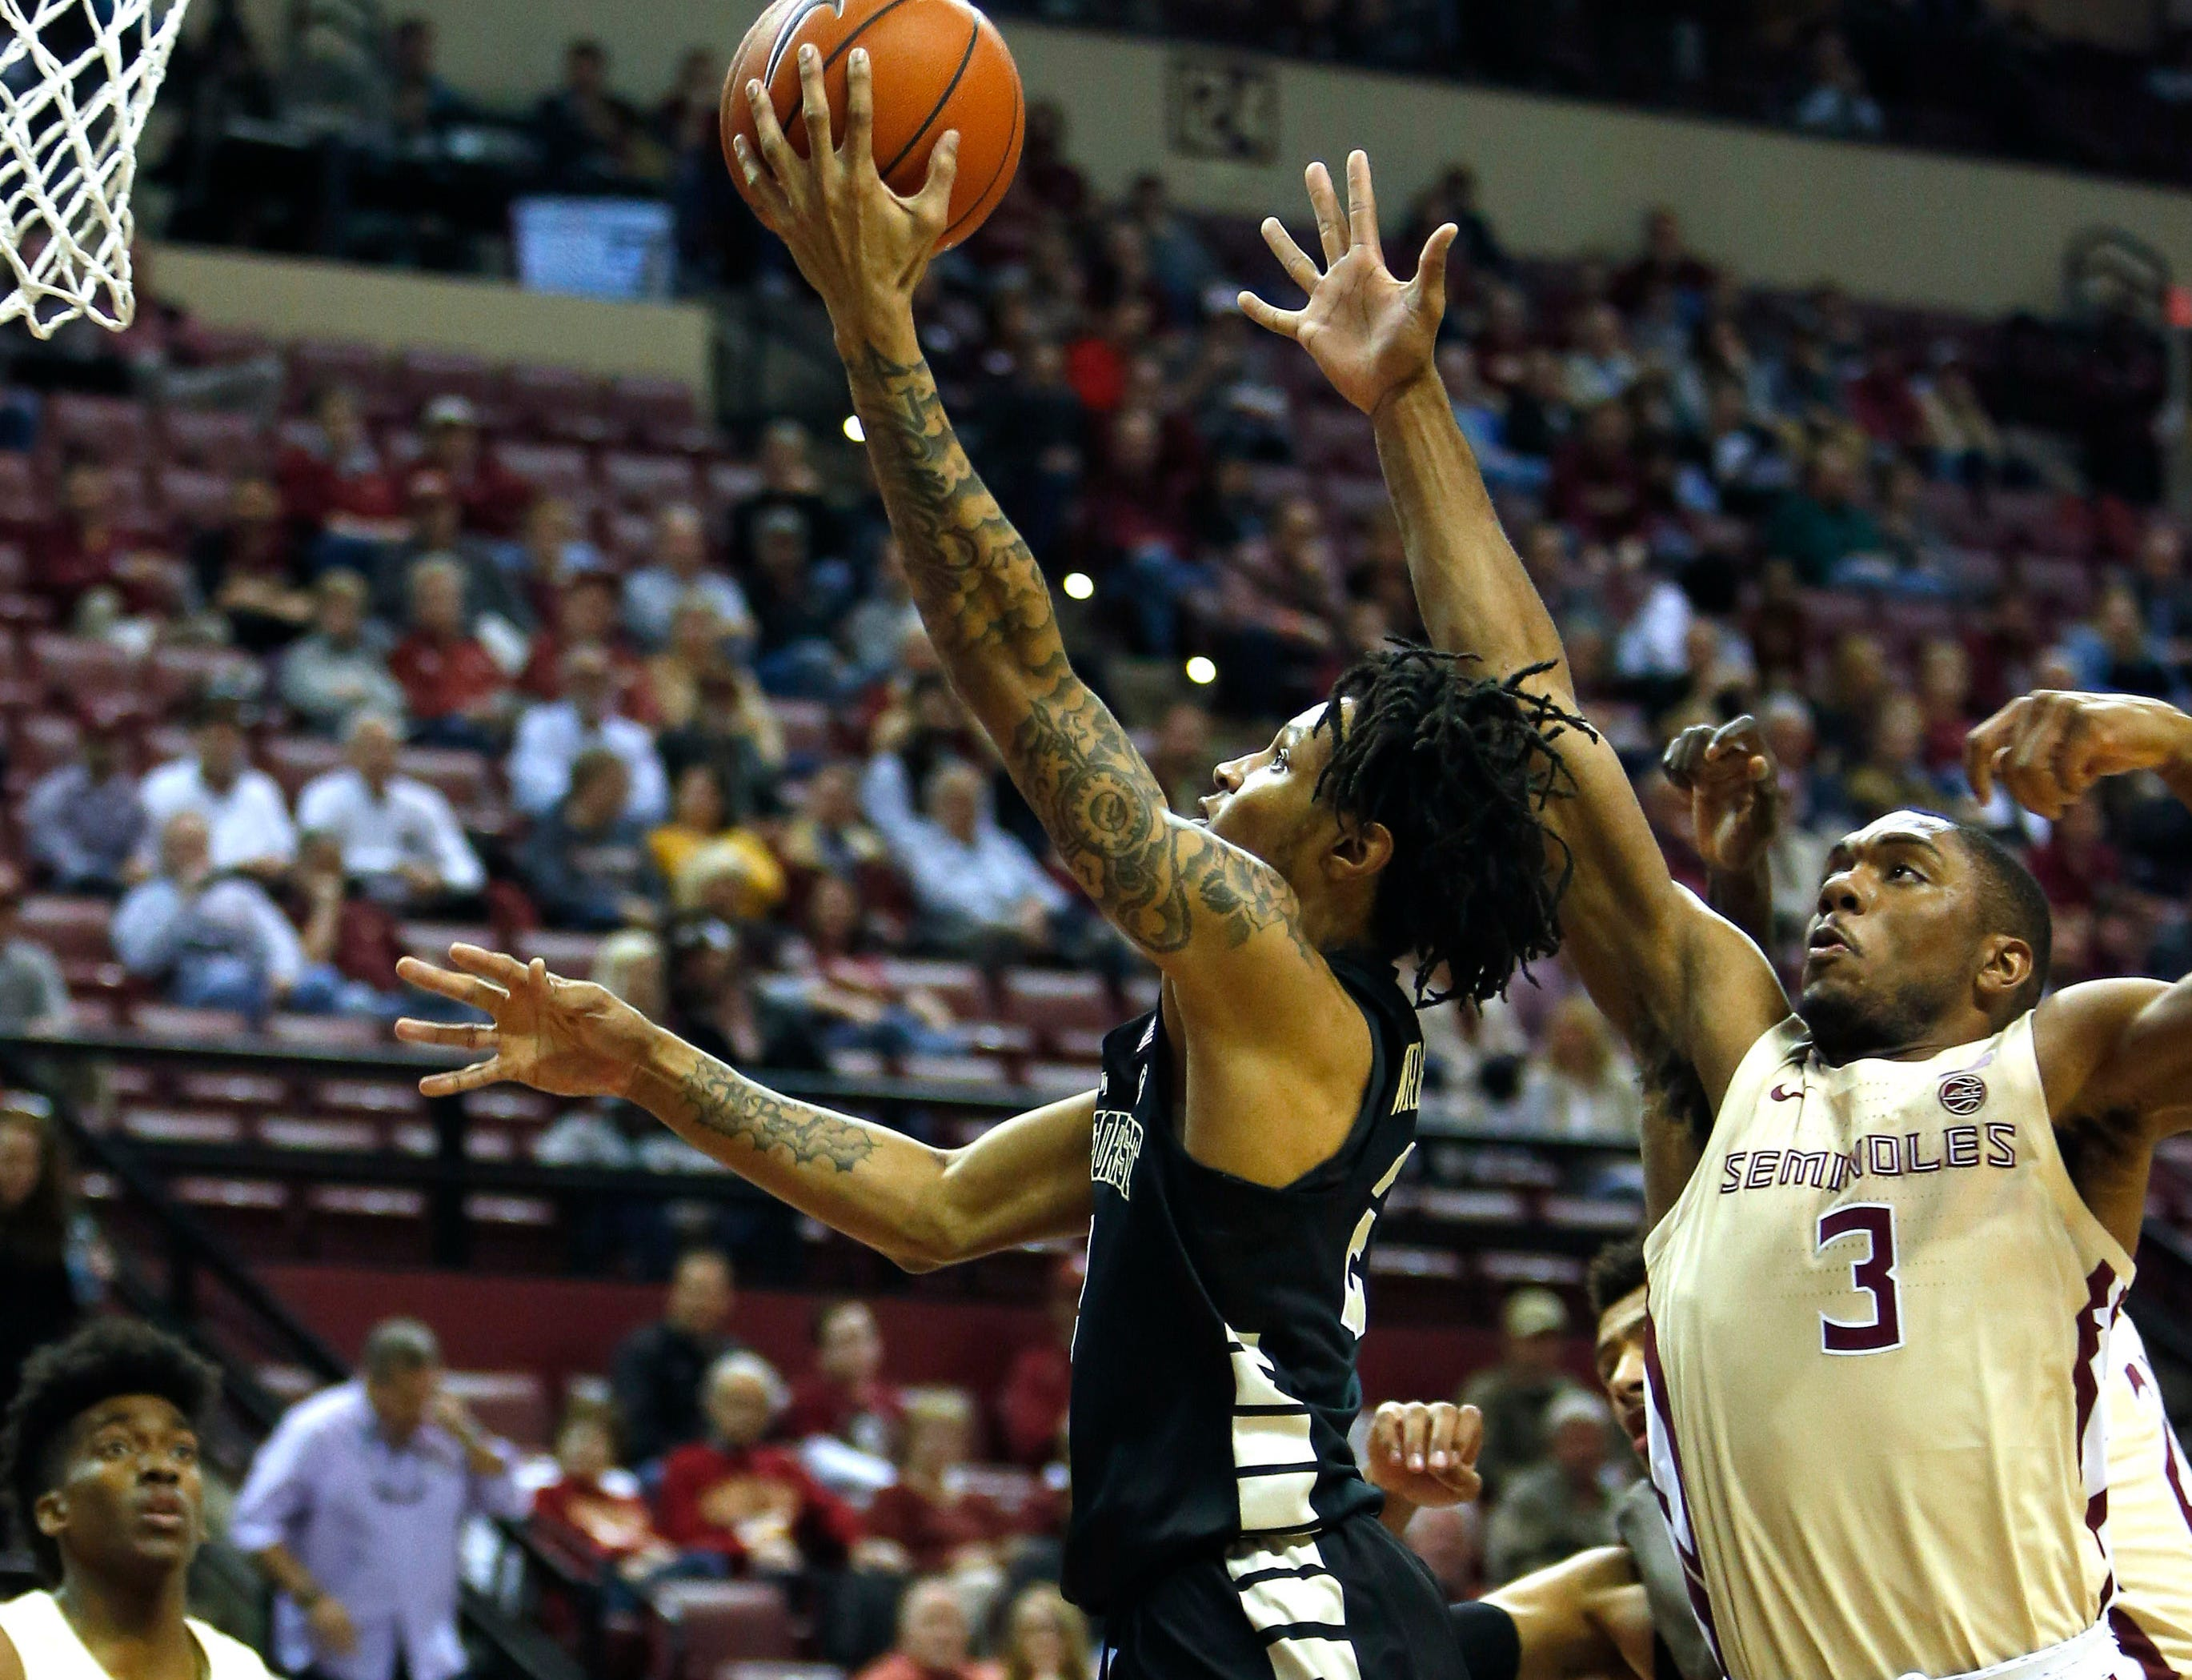 Feb 13, 2019; Tallahassee, FL, USA; Wake Forest Demon Deacons guard Sharone Wright Jr. (2) shoots the ball past Florida State Seminoles guard Trent Forrest (3) during the first half of action at Donald L. Tucker Center. Mandatory Credit: Glenn Beil-USA TODAY Sports